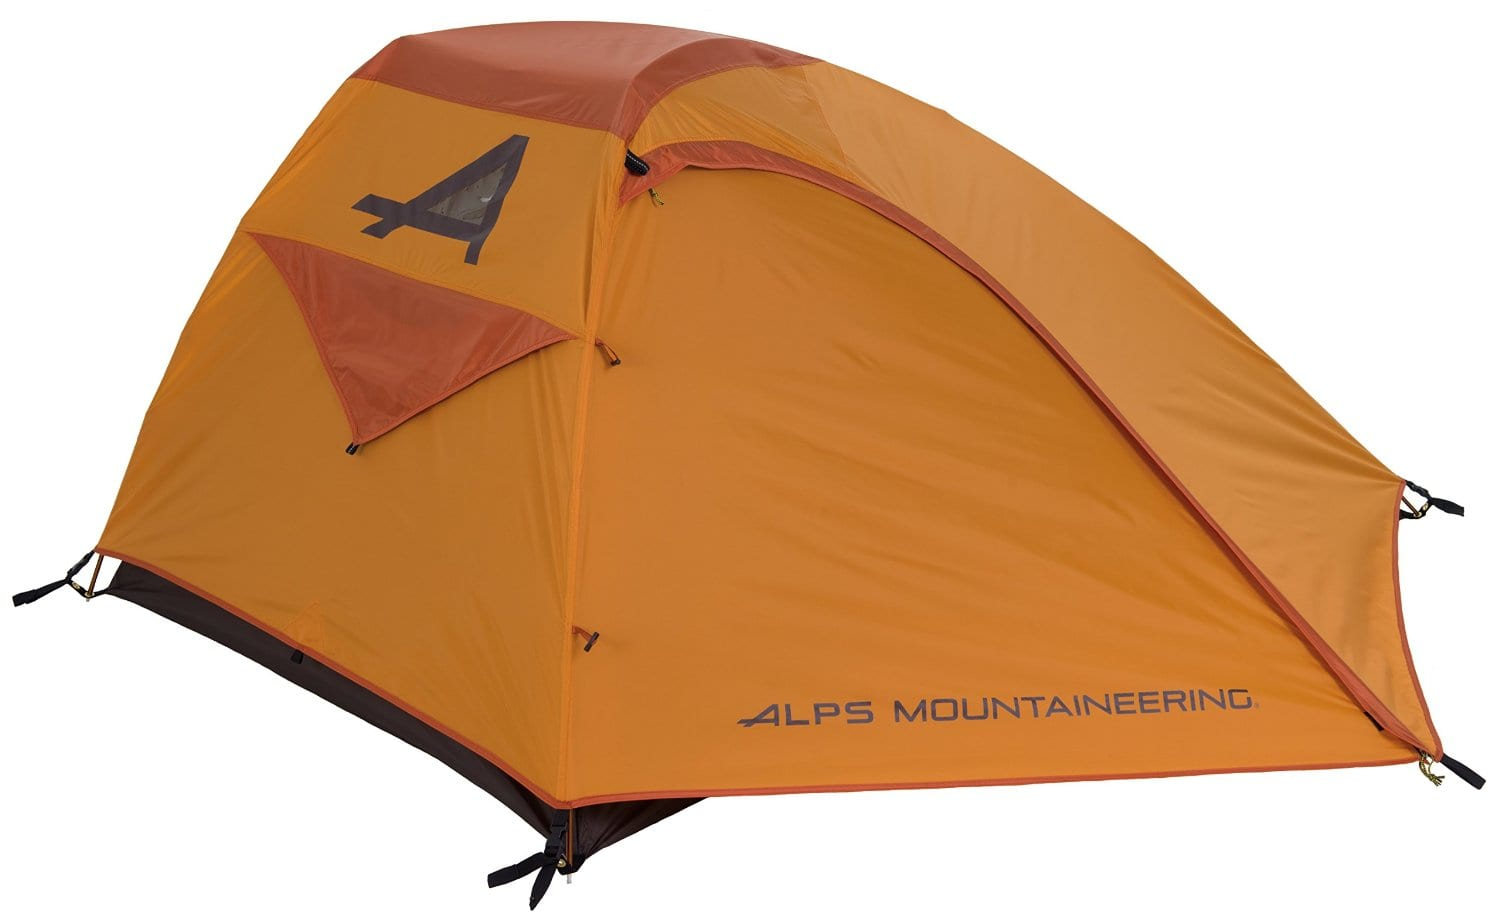 ALPS Mountaineering 3-Person Zephyr 3 Tent  $80 + Free Shipping